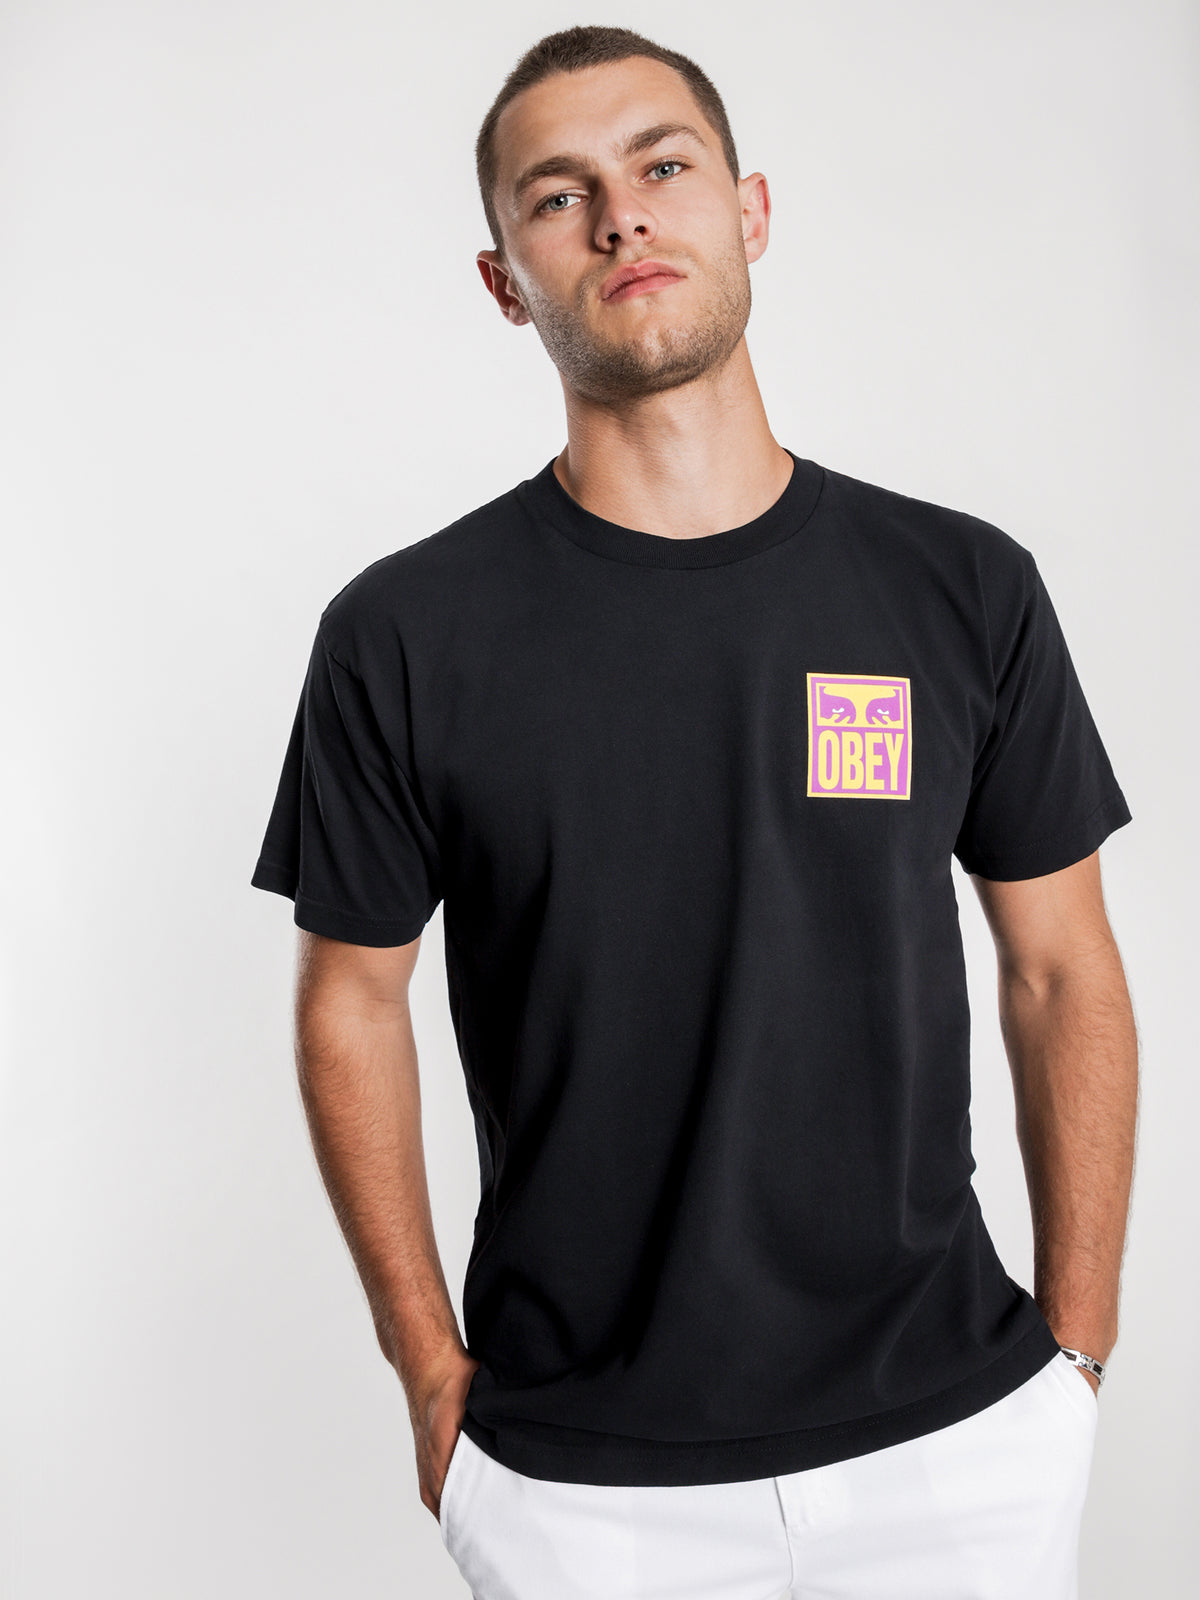 Eyes Icon T-Shirt in Black